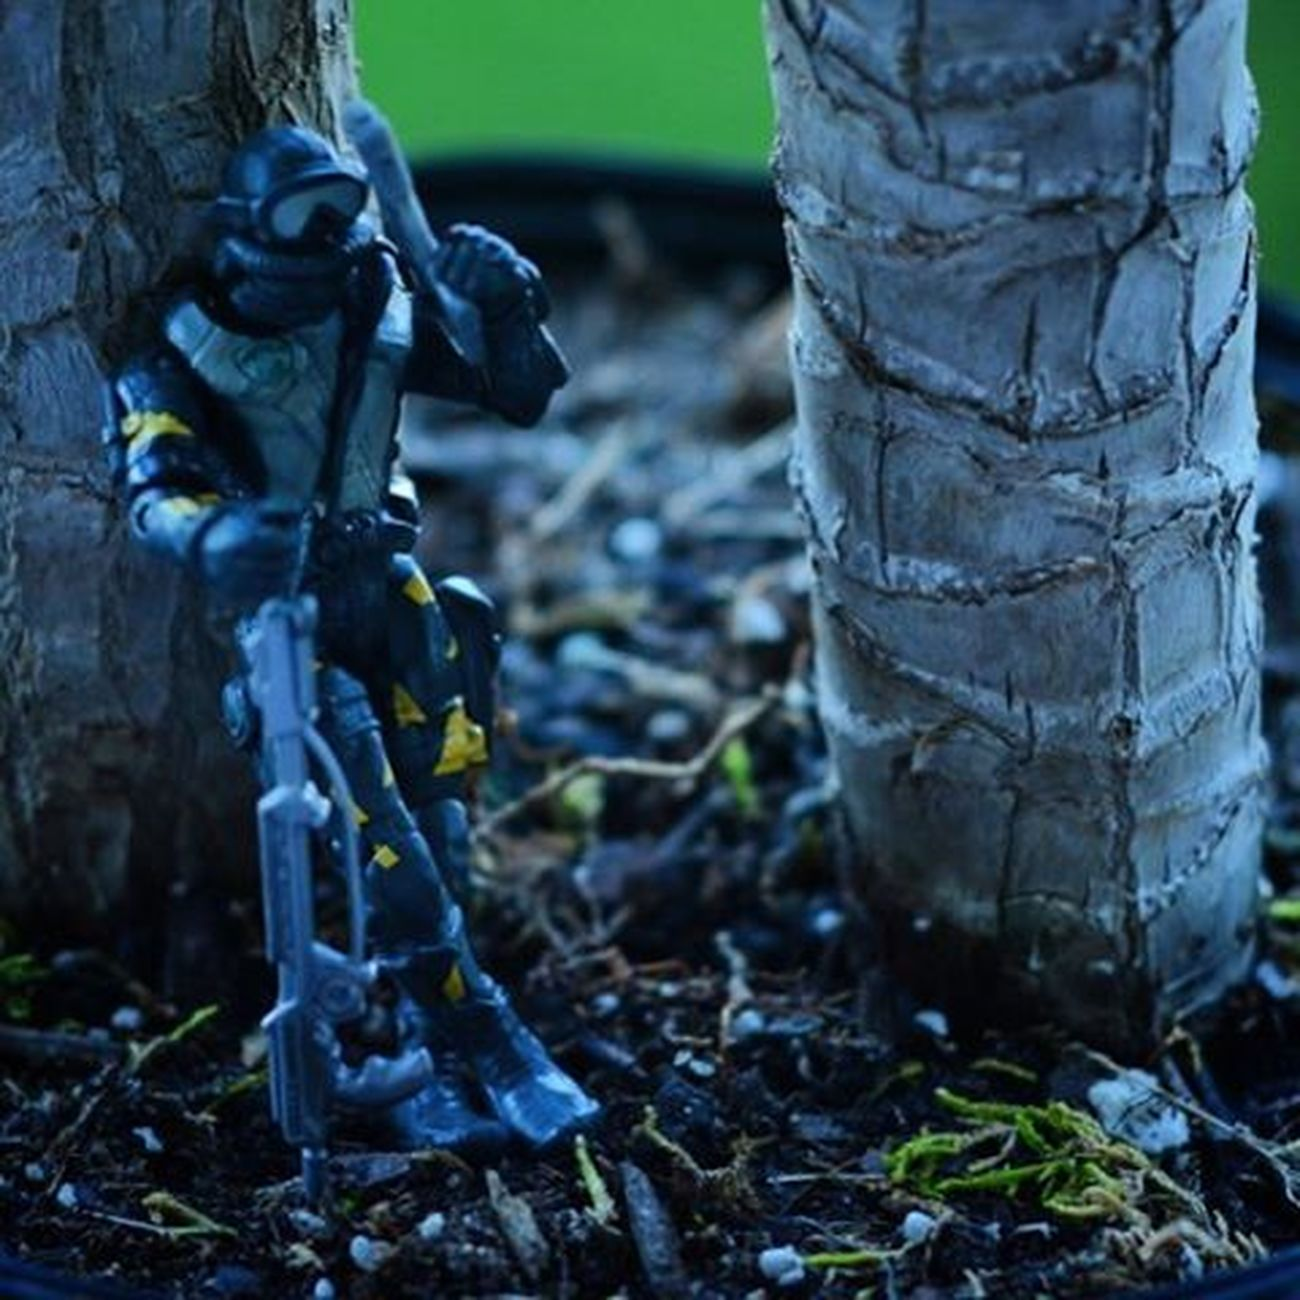 Killin time..and enemies. Toyonlocation Gills Thecorpseelite Rando Toys Cheaptoys Military Miniature Toypictures Toyart Plants Actionfigure Clean_captures Collectable Figurine  Toystagram Toystory Camo Toy Toyaddict